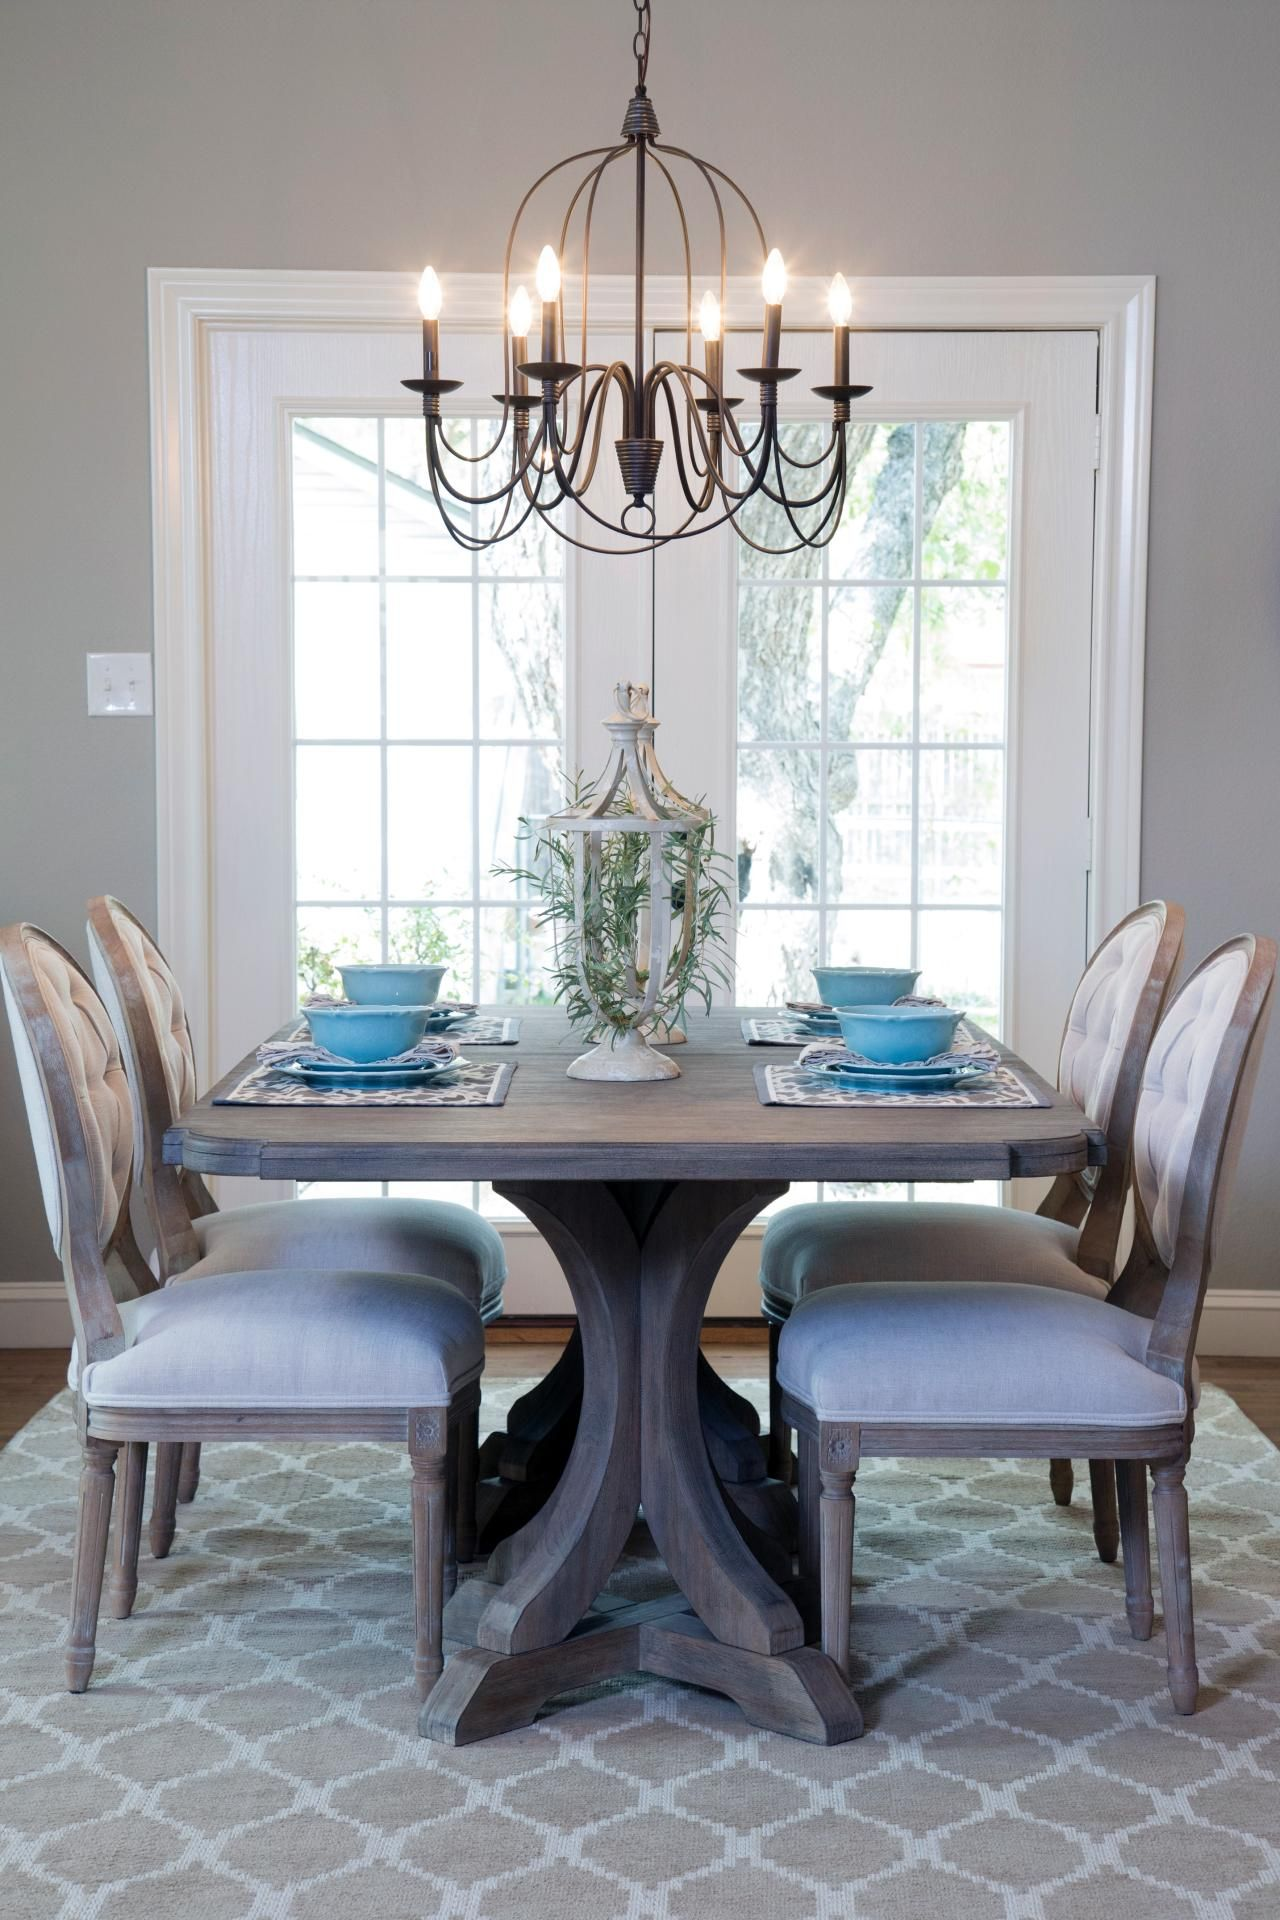 A 1940s Vintage Fixer Upper For First Time Homebuyers Table And Chairs Dining